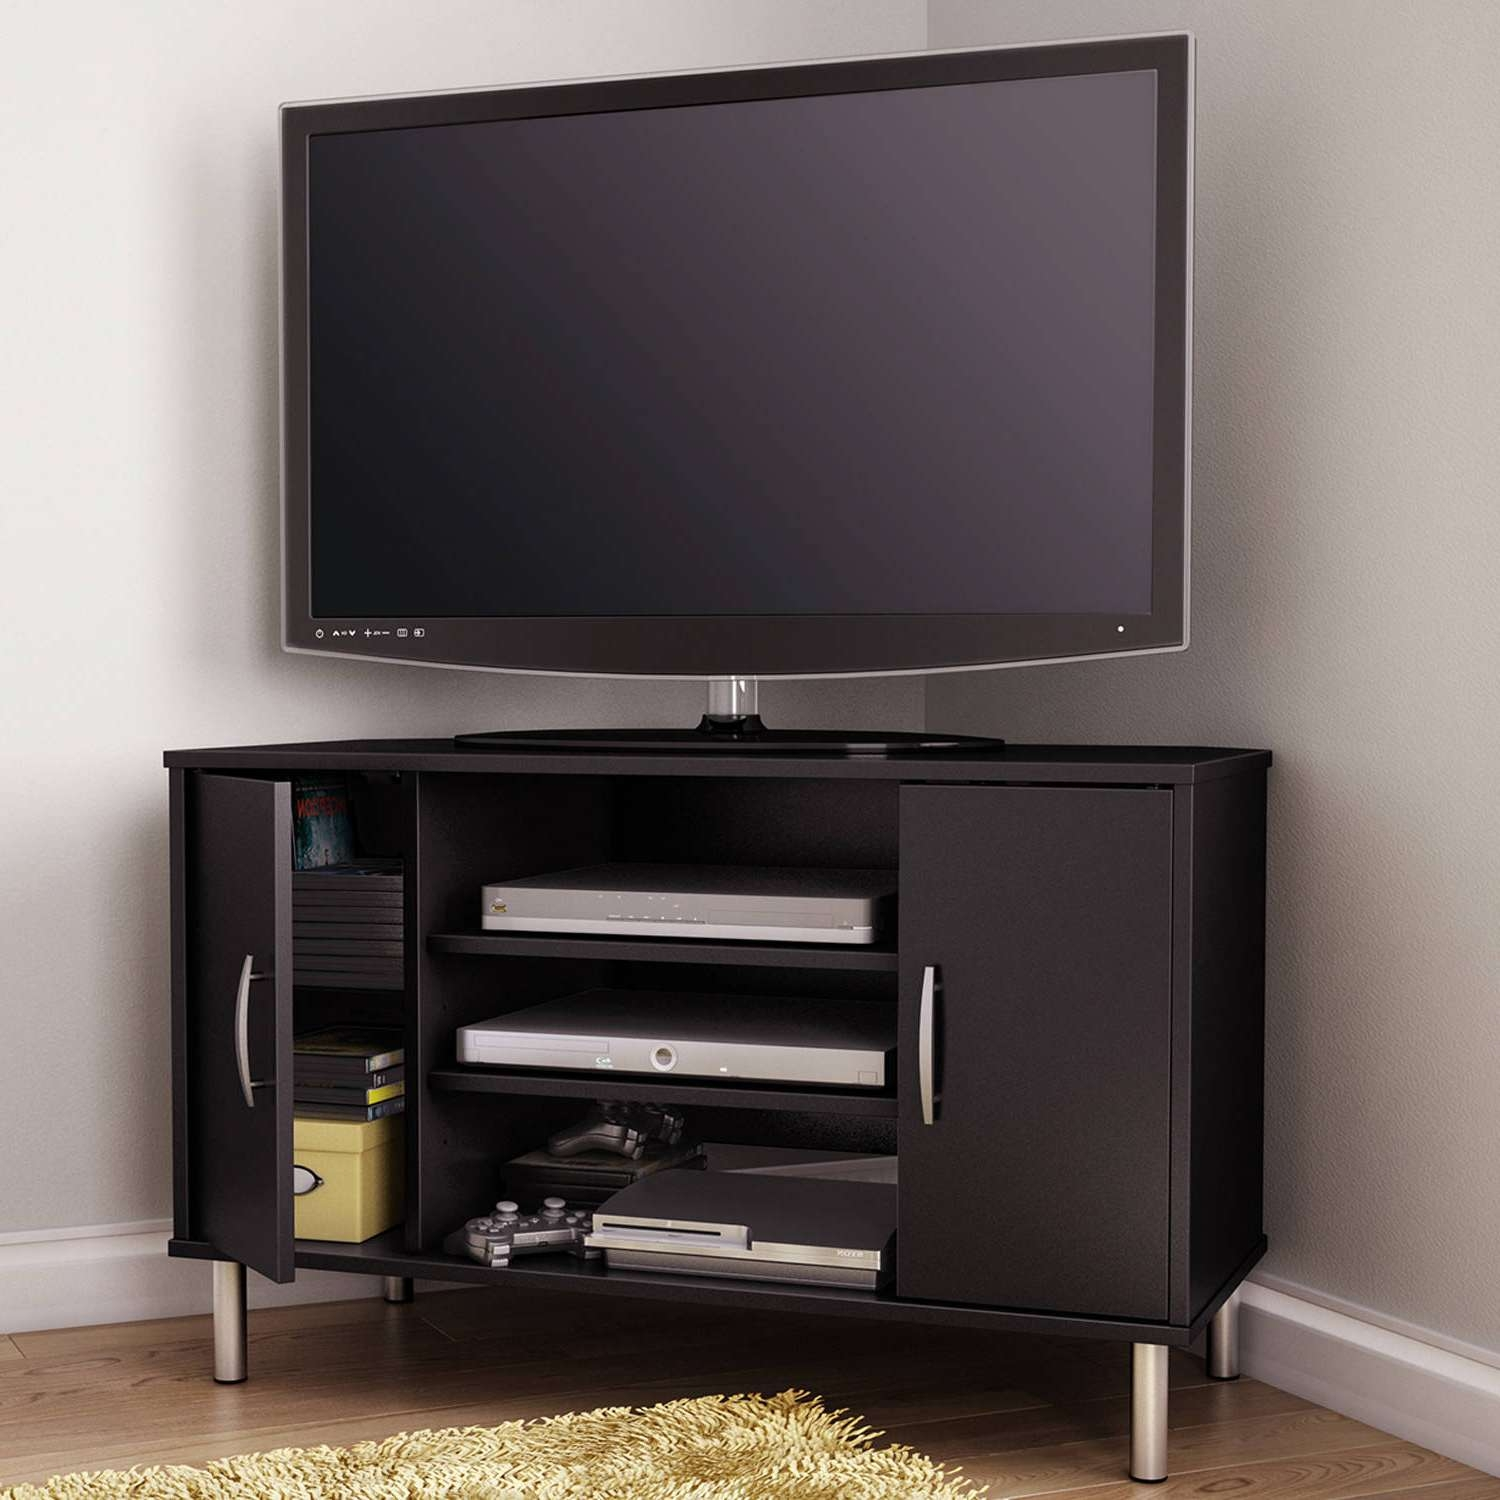 Tv Stand : 43 Literarywondrous Corner Tv Stand For 50 Inch Flat Throughout 50 Inch Corner Tv Cabinets (View 17 of 20)